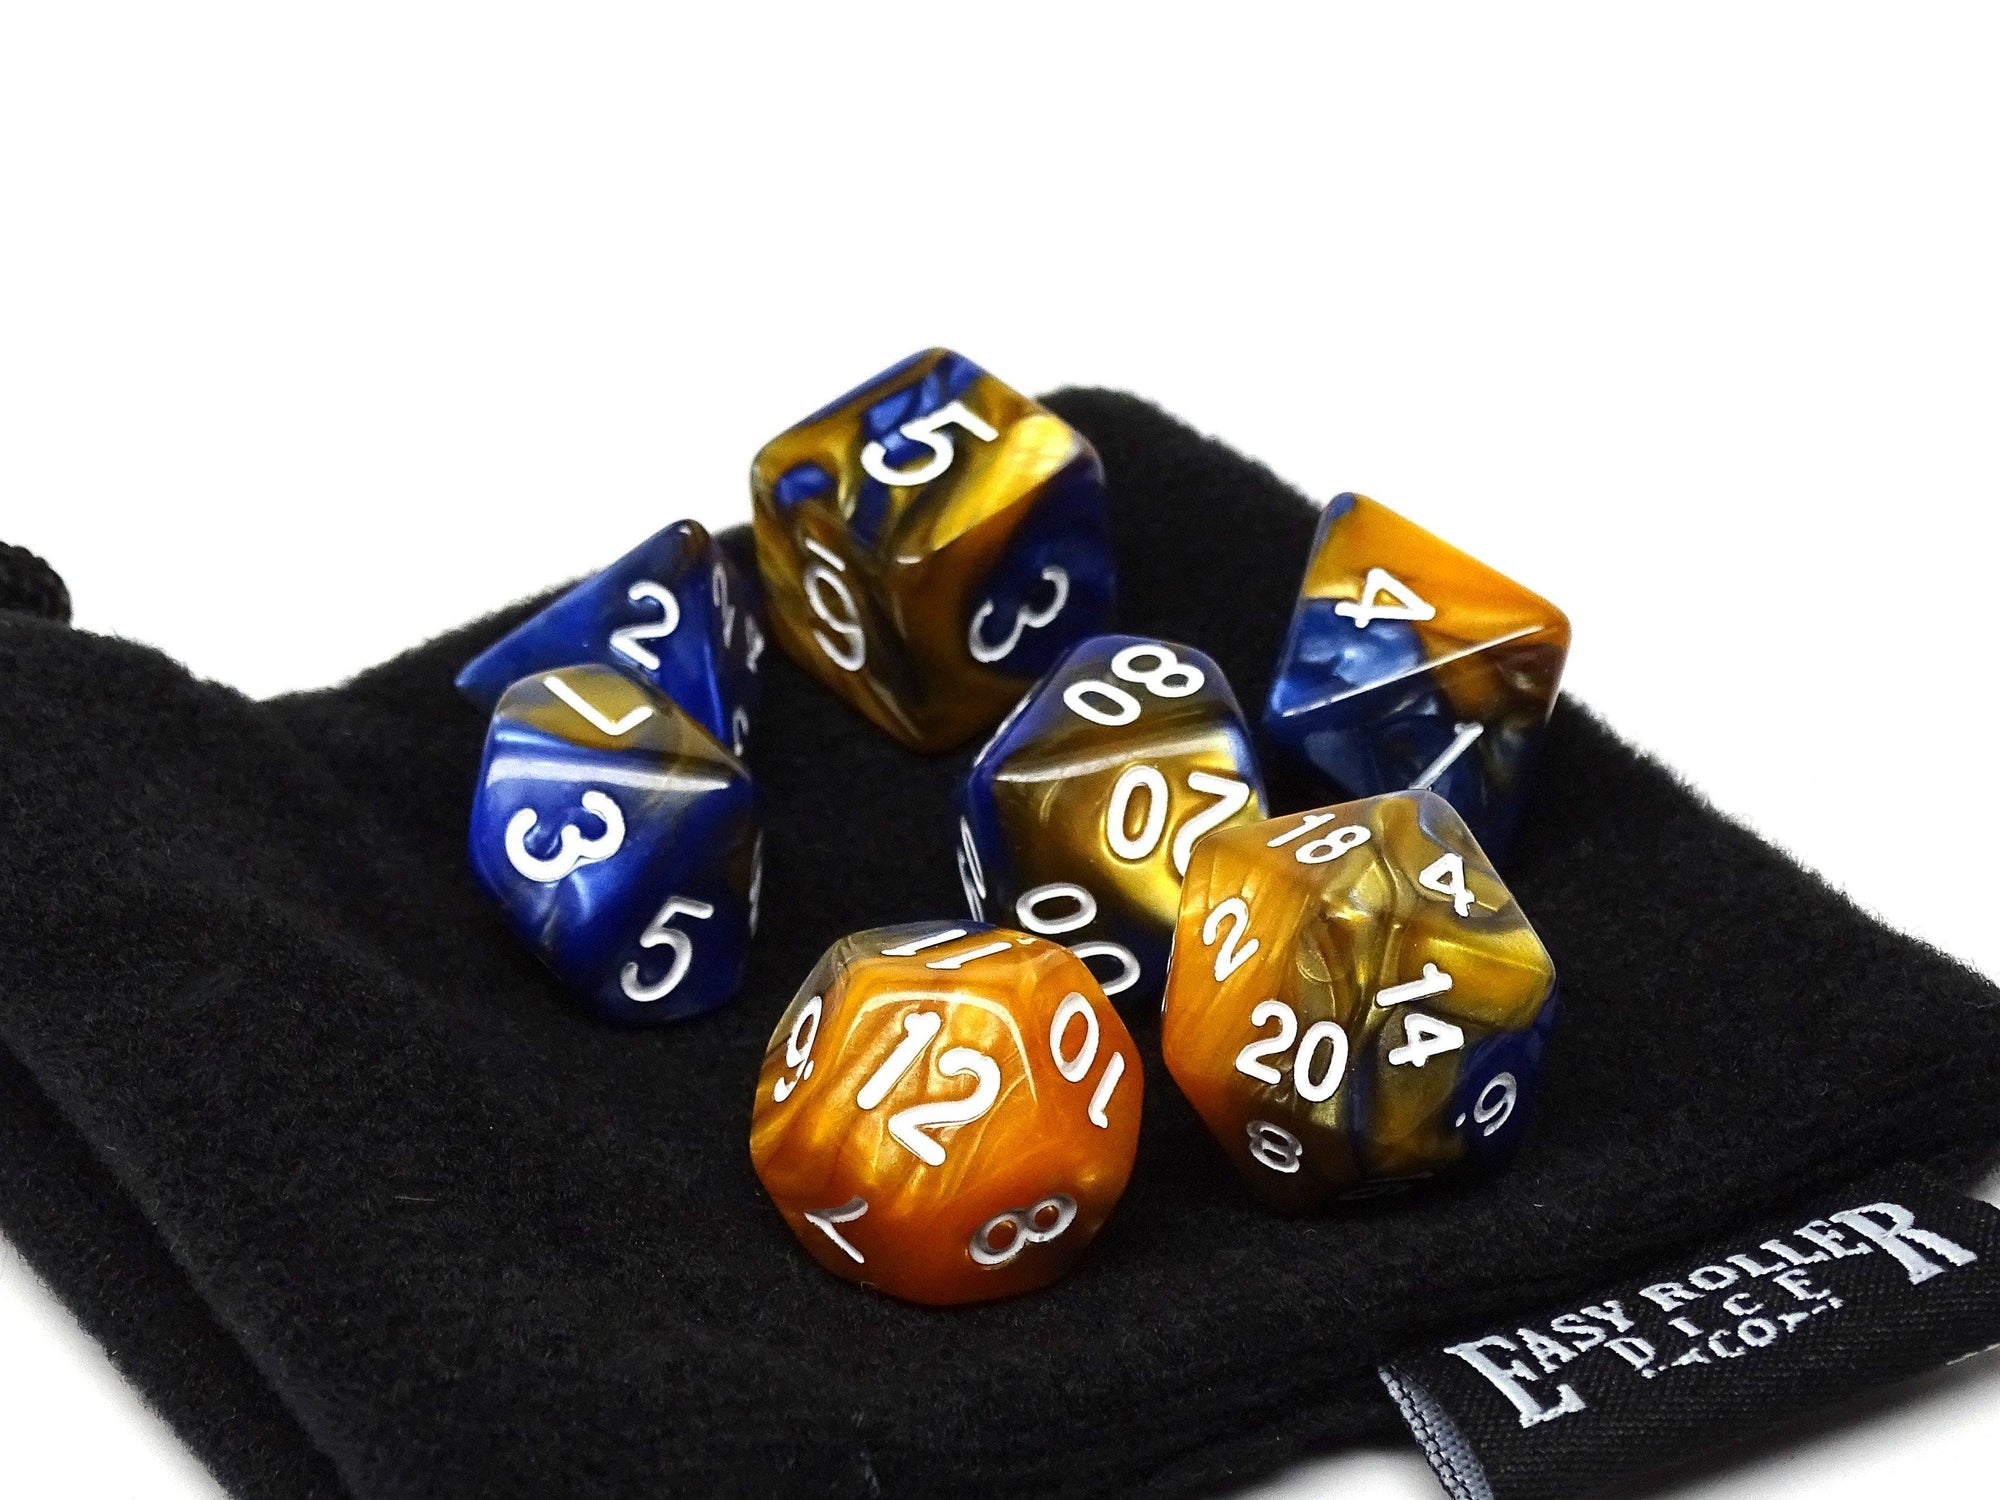 Blue and Amber Granite Dice Collection - 7 Piece Set